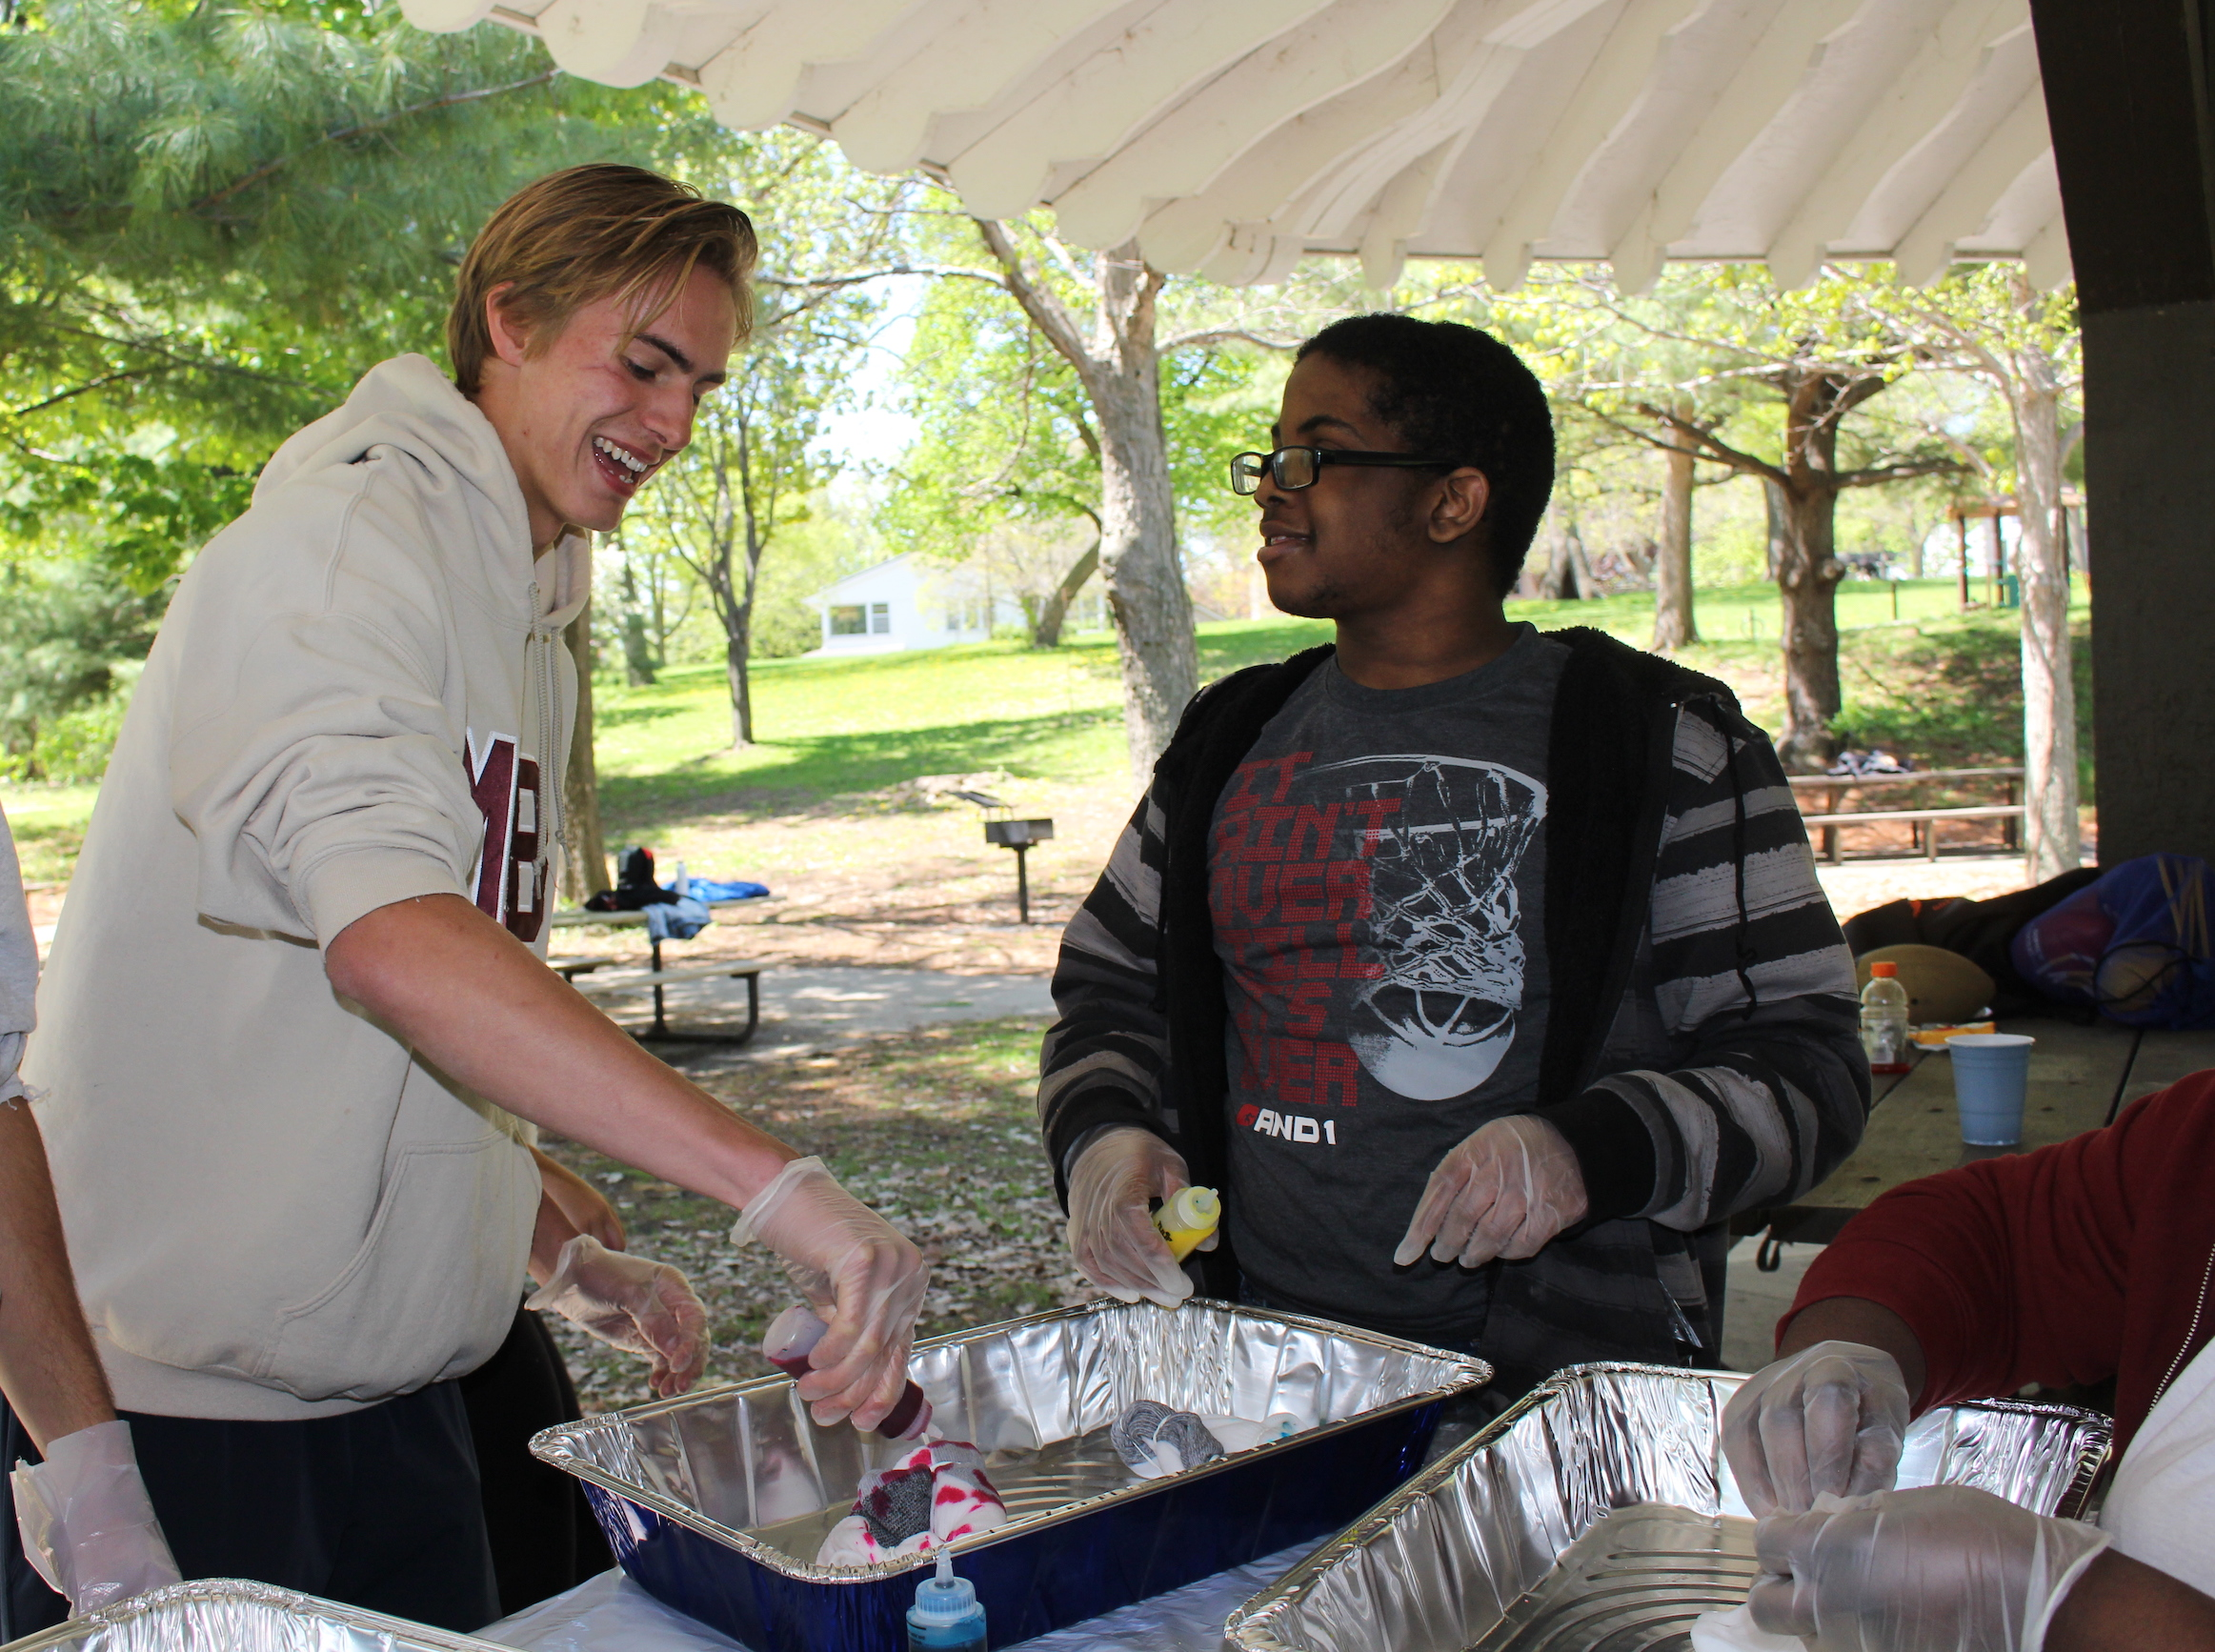 Luke Youngdahl (left) and D'Avian Cyrus tie-dye during the celebration.